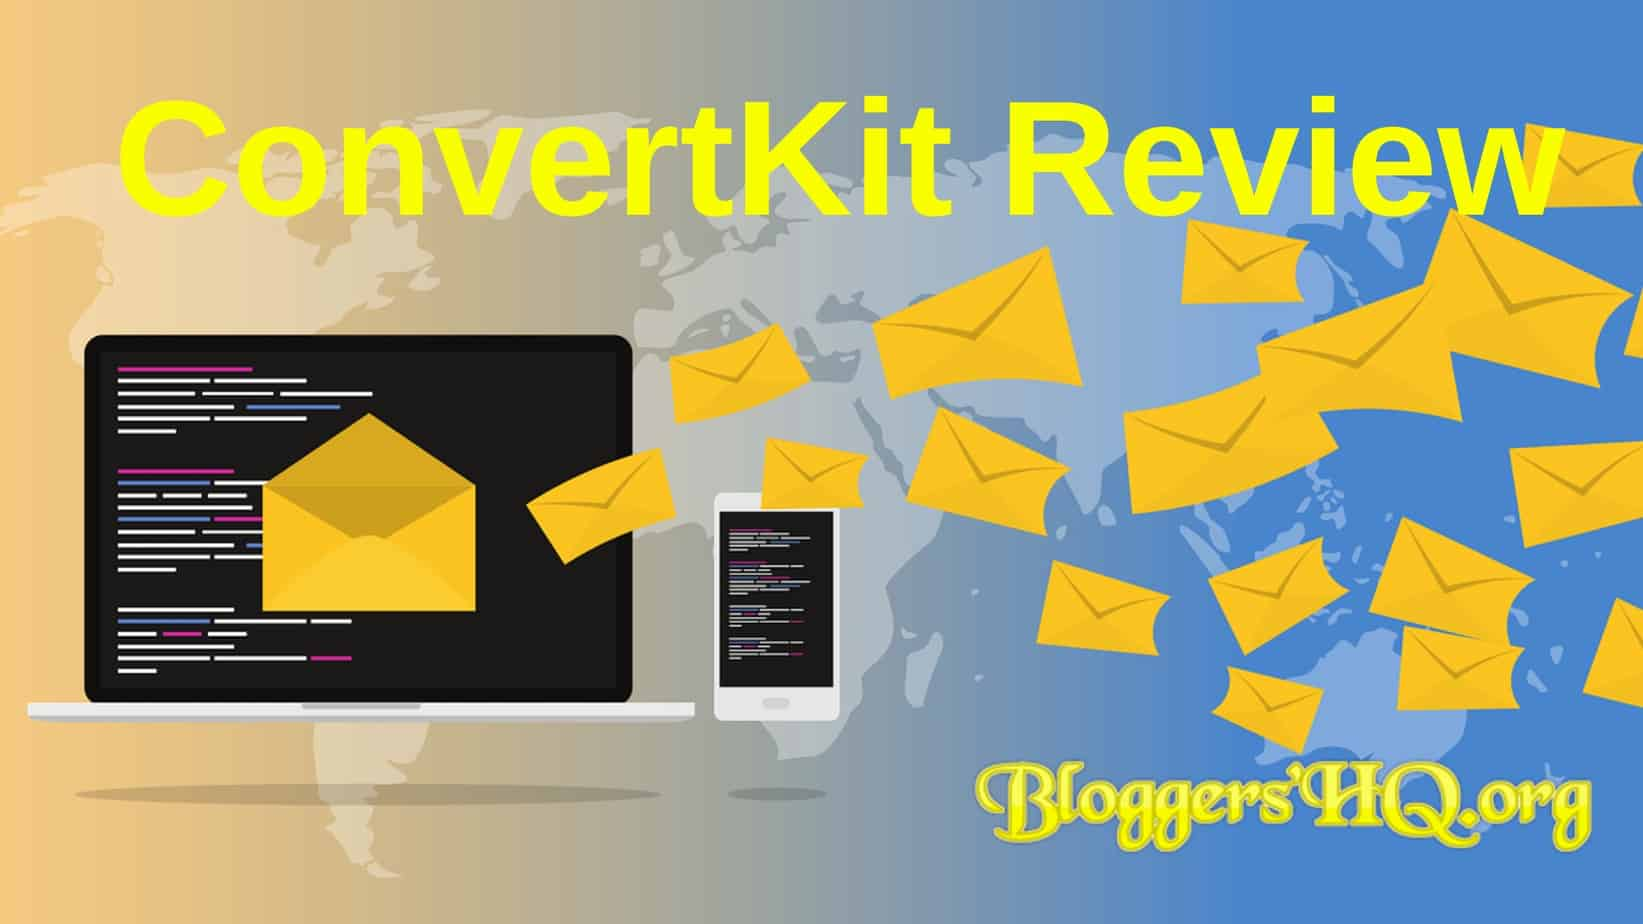 Buy Email Marketing Convertkit Verified Online Coupon Printable May 2020